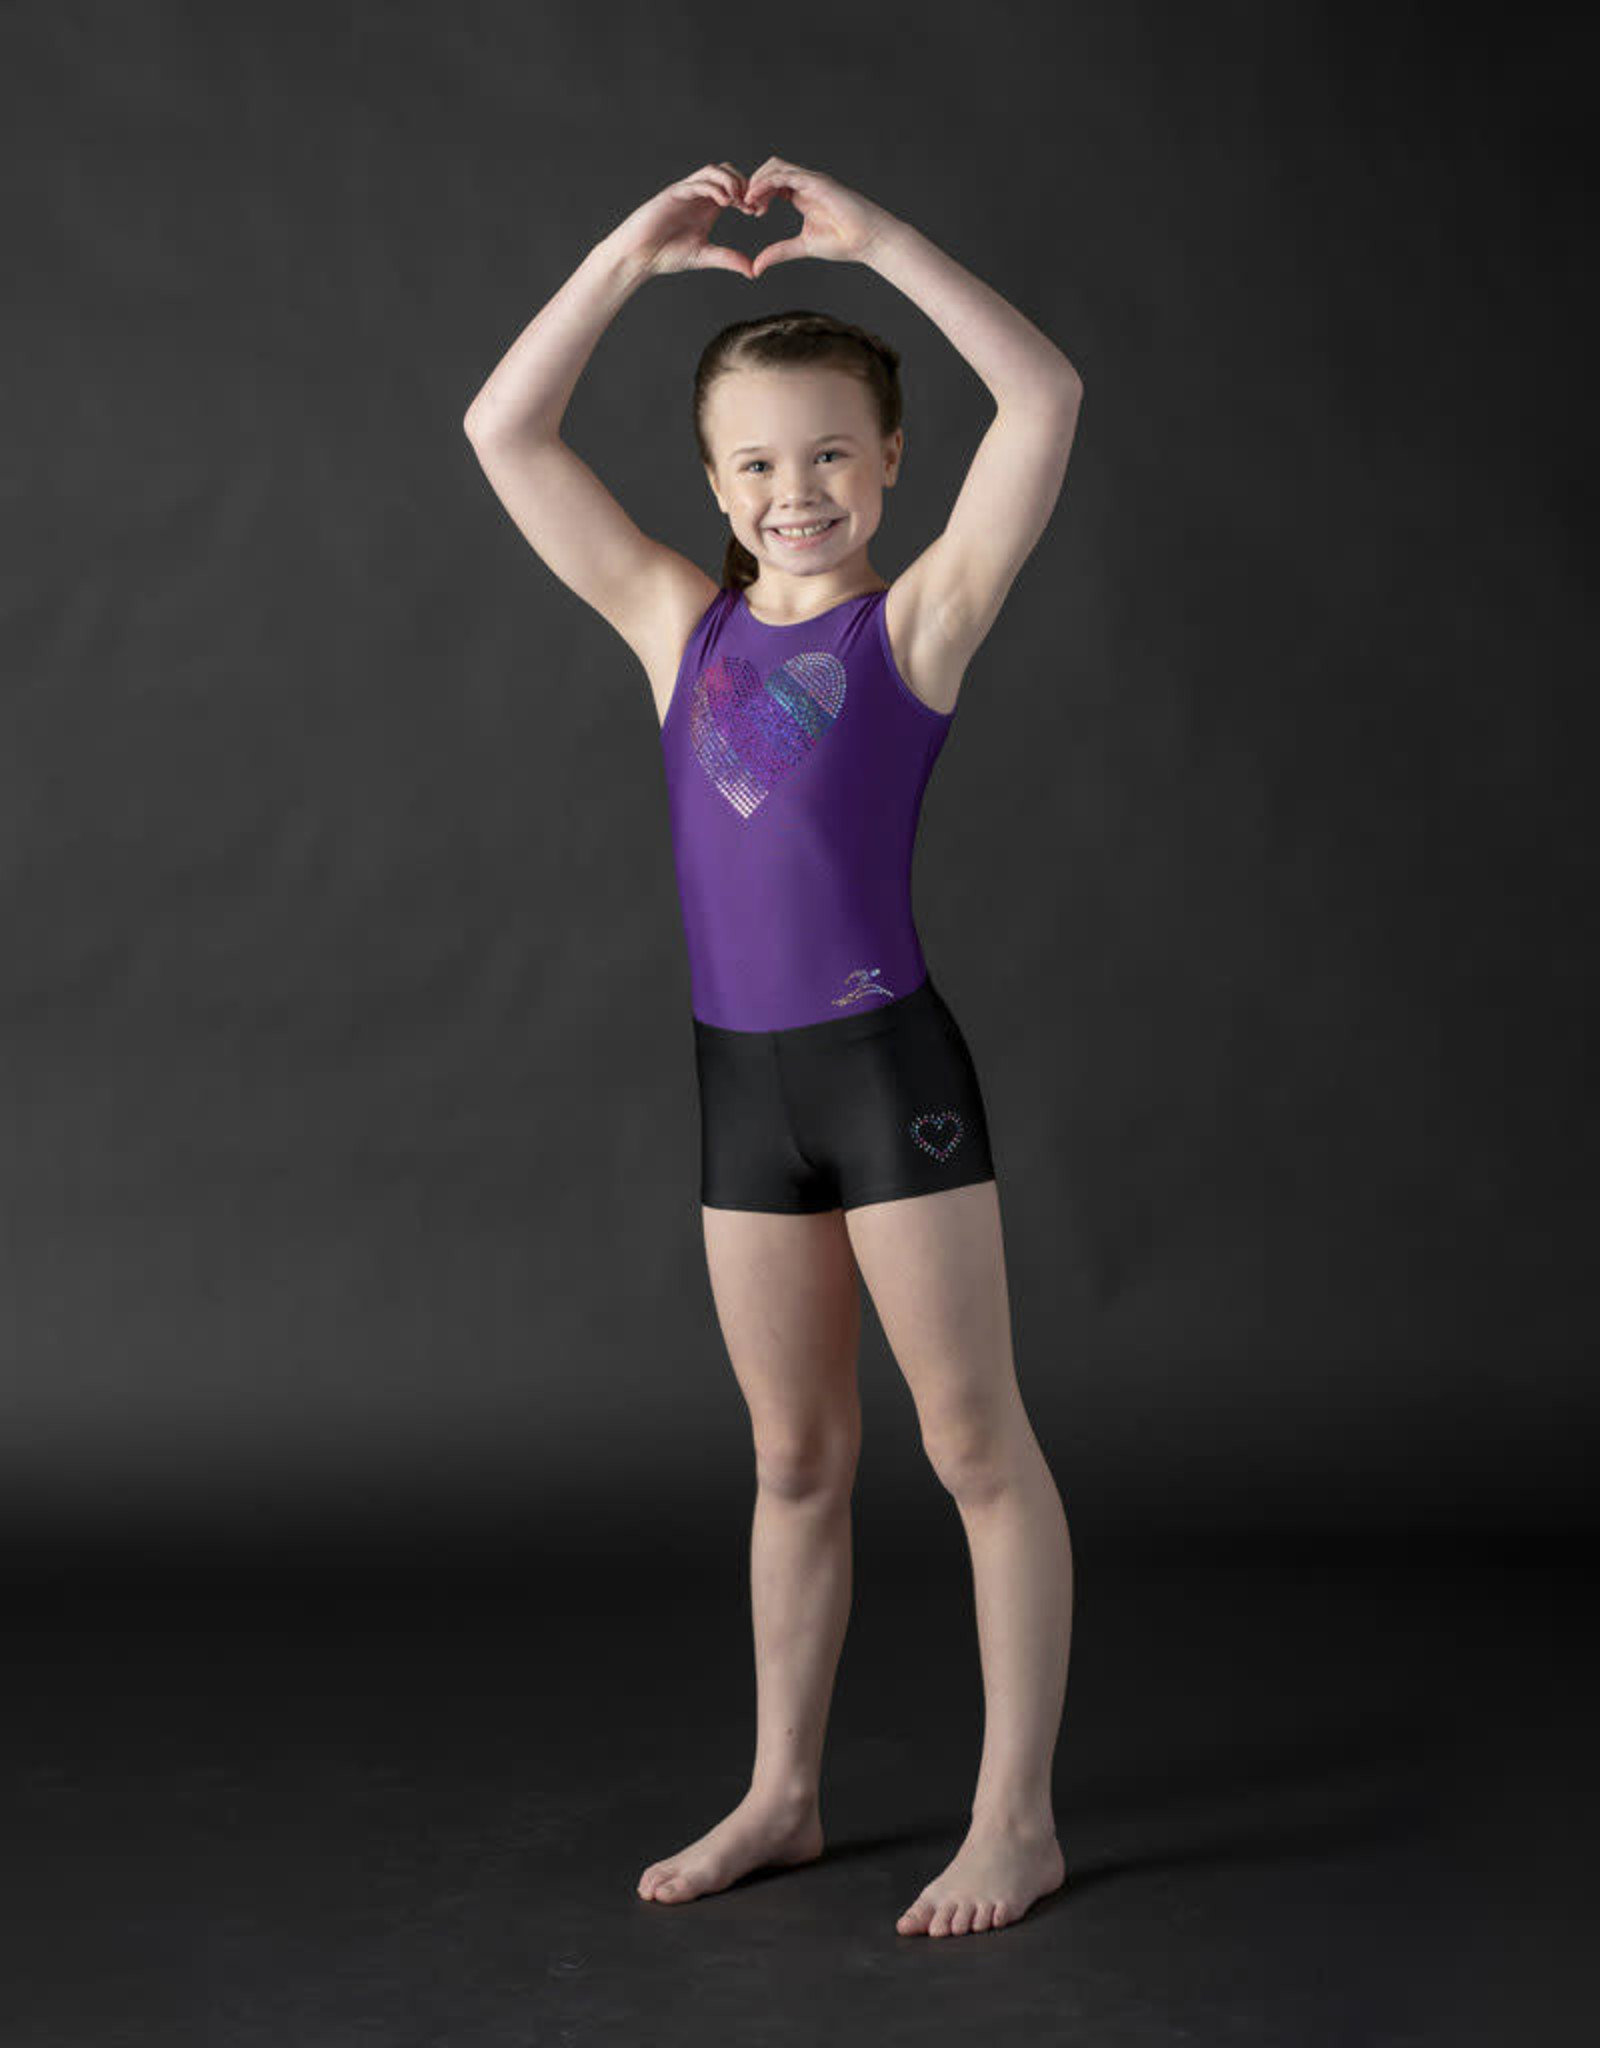 Motionwear Leotard Gymnastics 1702